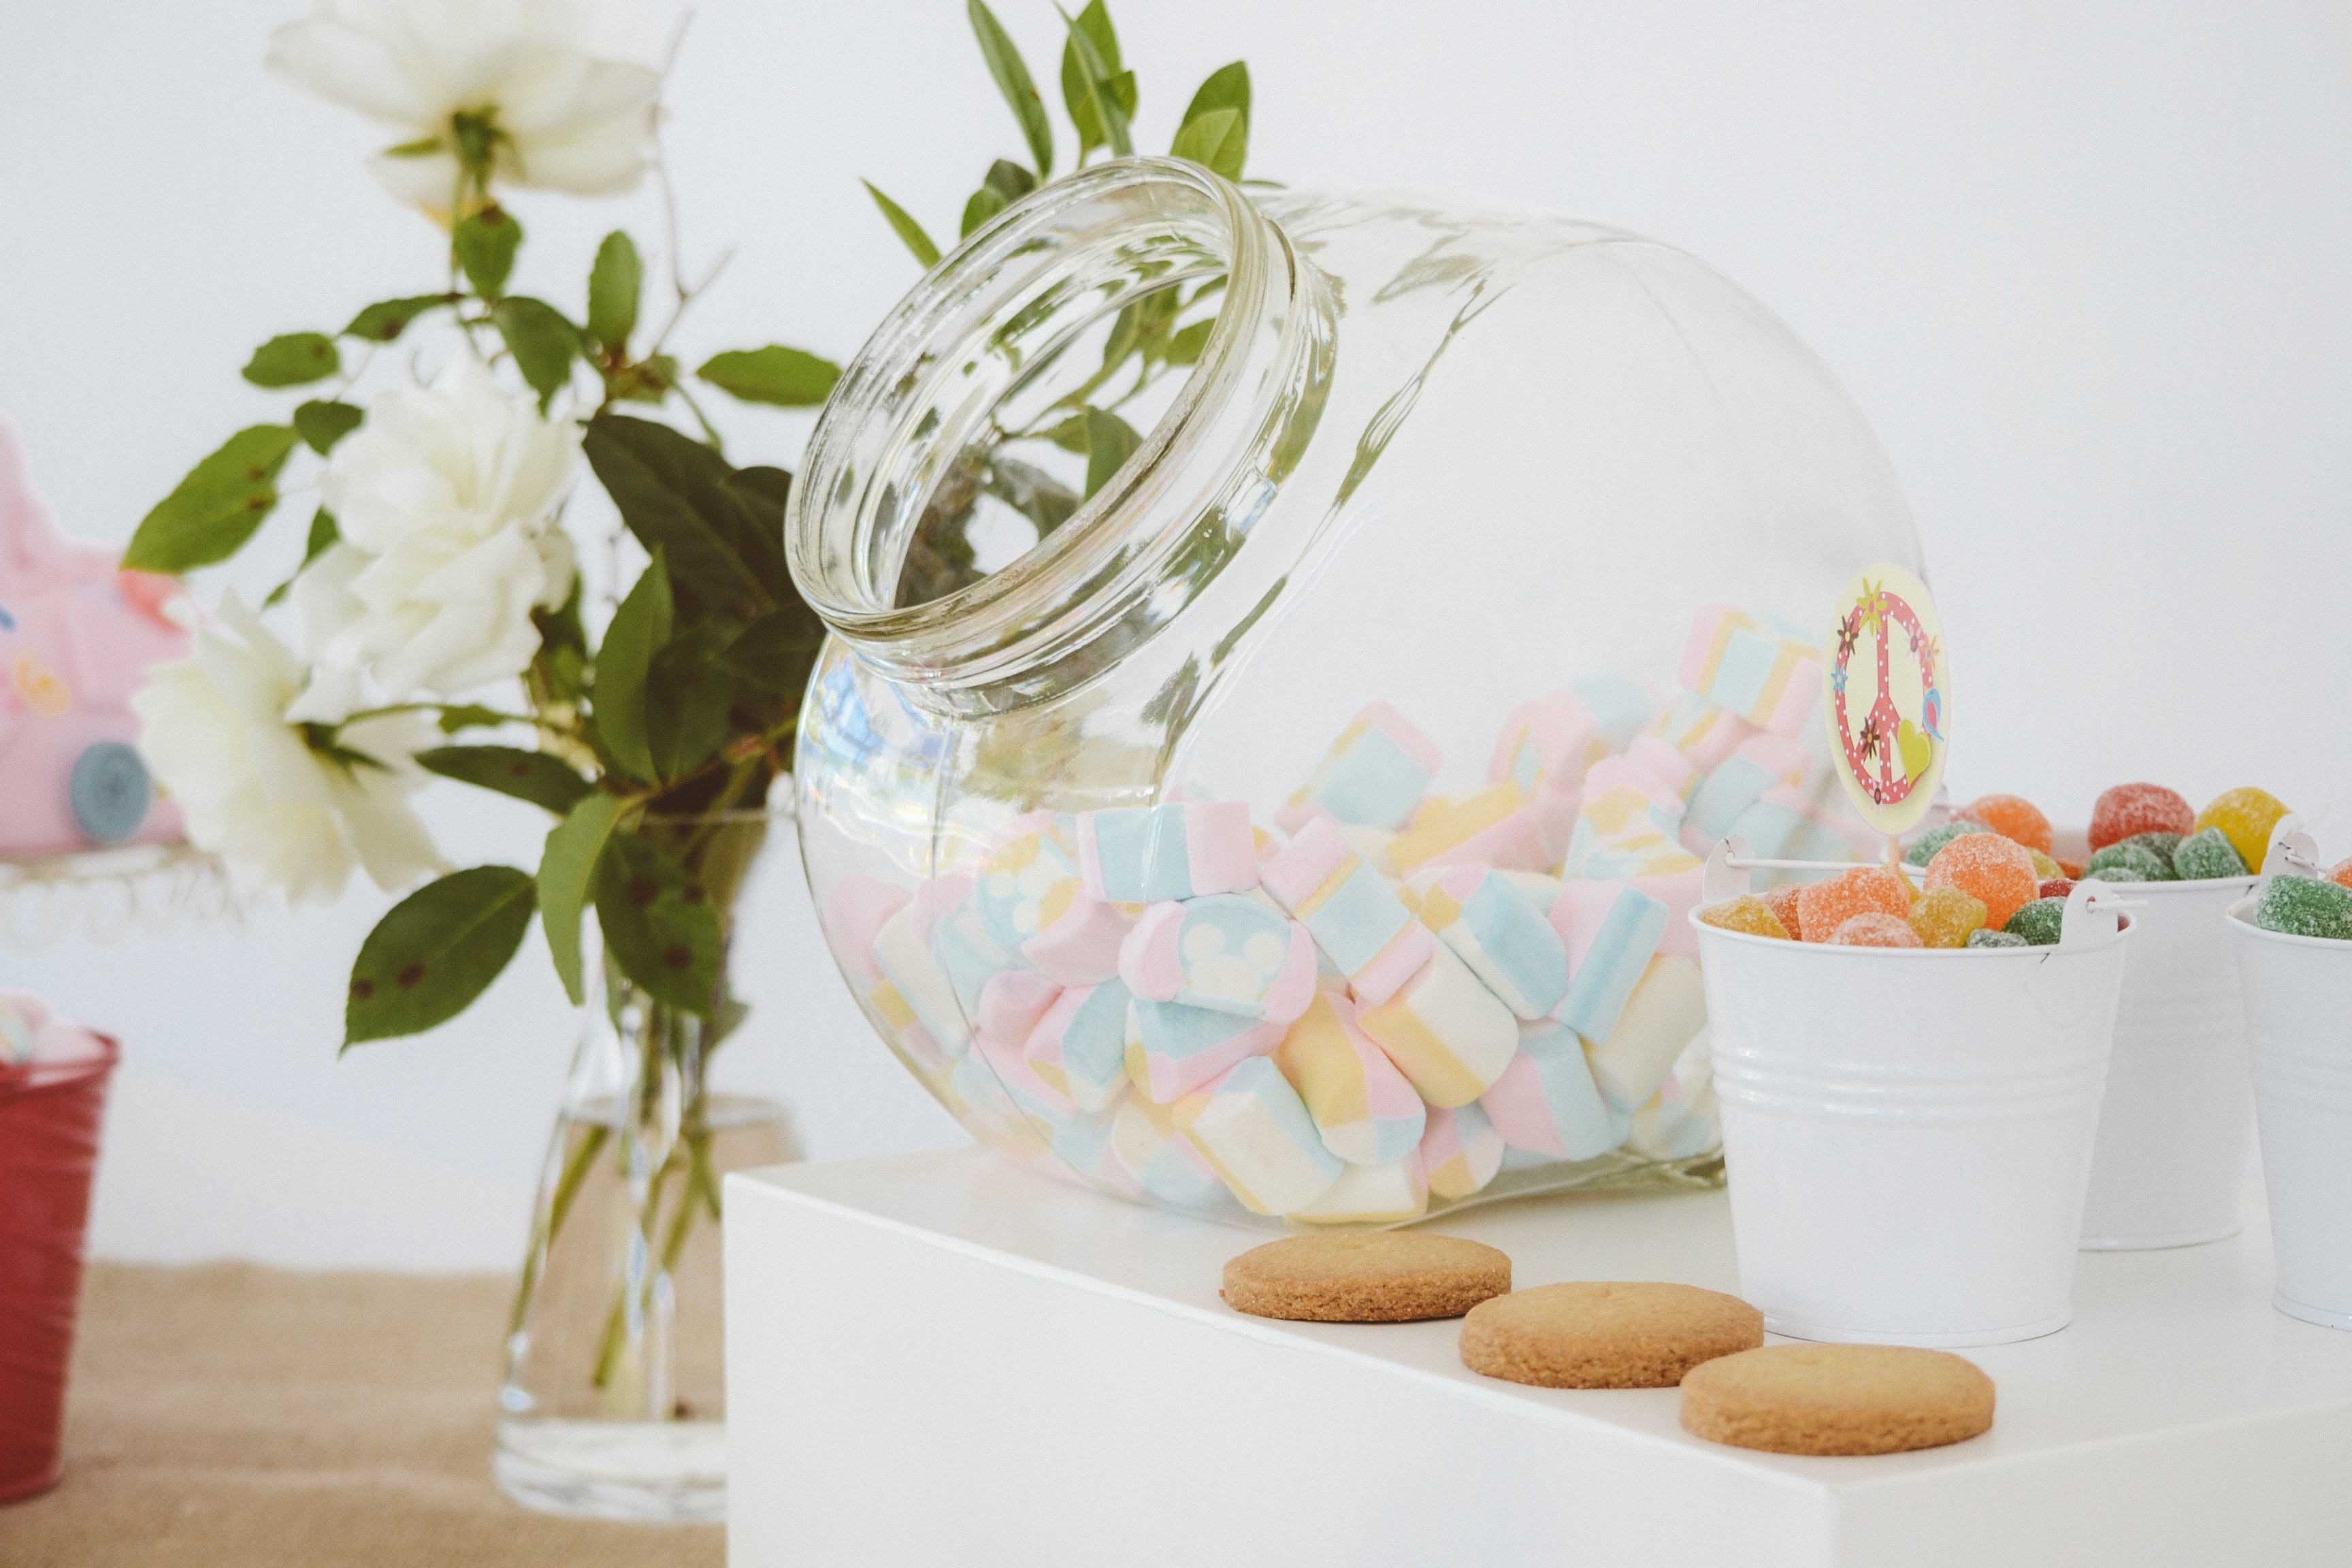 A large jar full of colorful marshmallows next to cookies and cups of candy